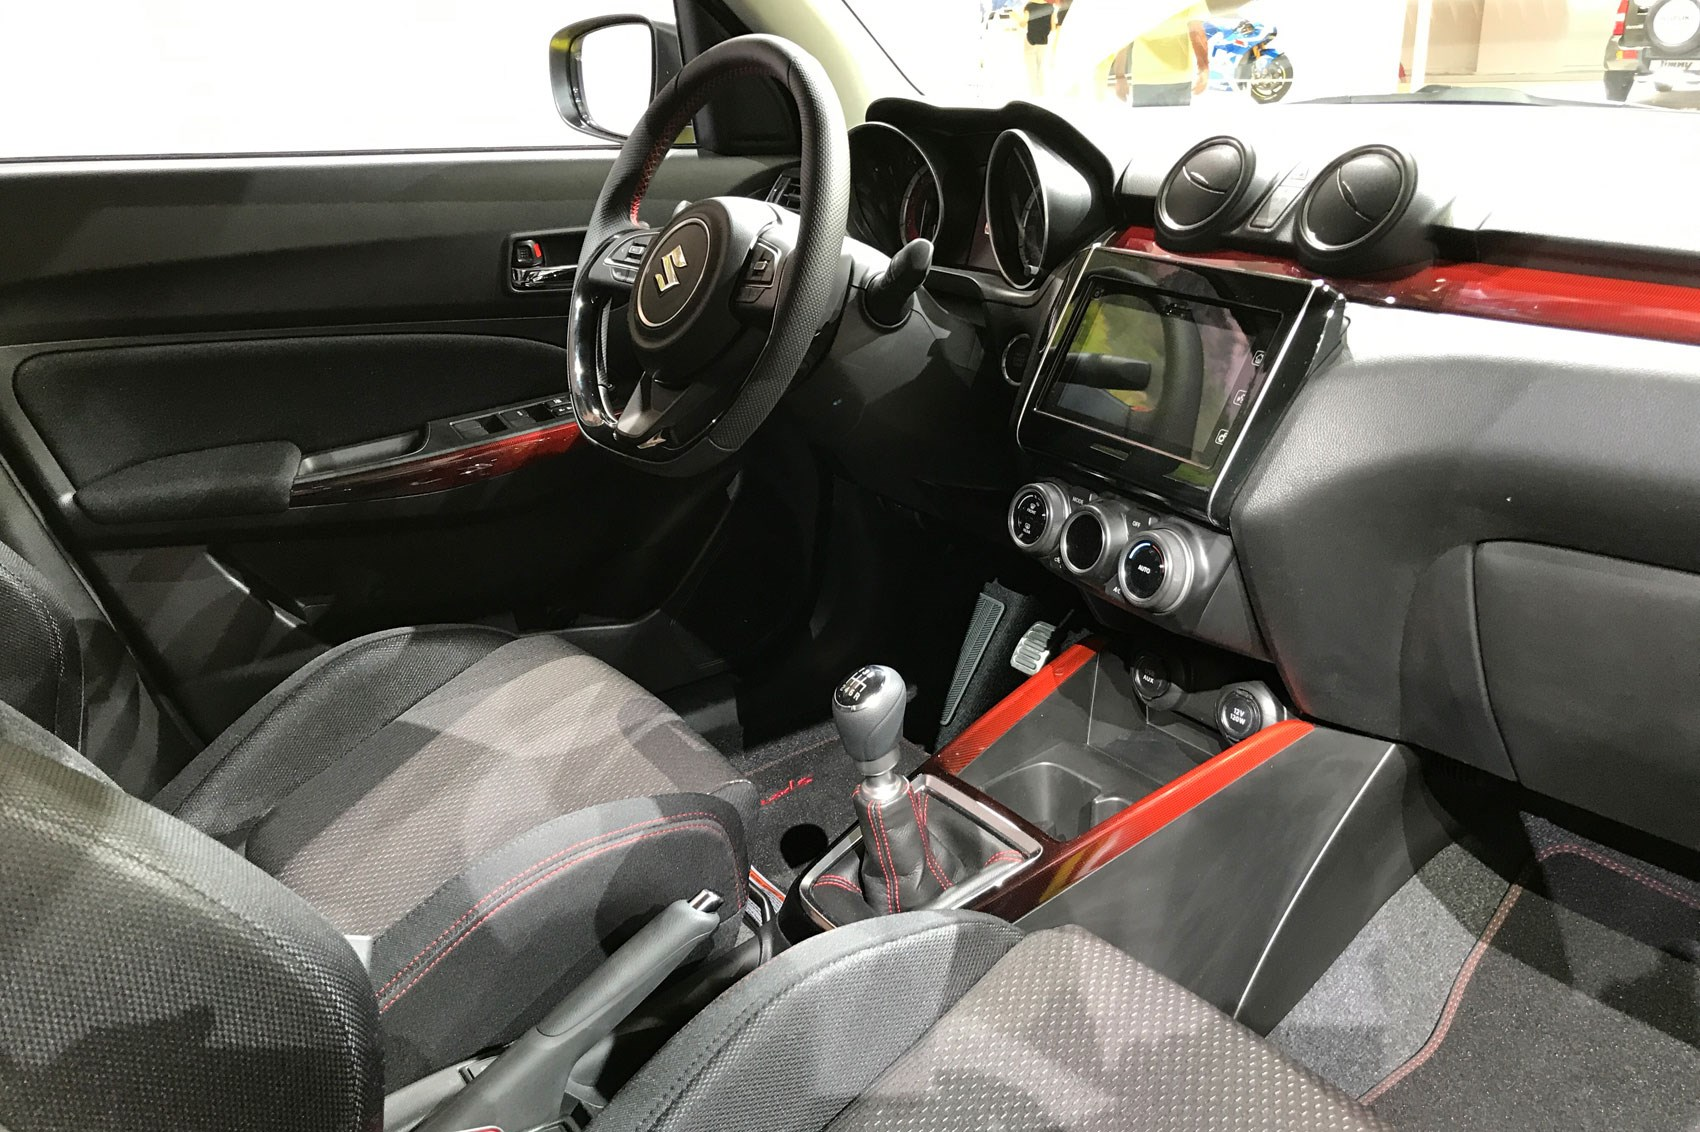 Peugeot 308 Gt Thp And 308 Sw 2008 First Official Pictures furthermore Mercedes Amg Gt Given Military Camouflage furthermore 3243 together with Name That Shifter No 25 also Mercedes Amg Gt Given Military Camouflage. on tesla model 3 engine